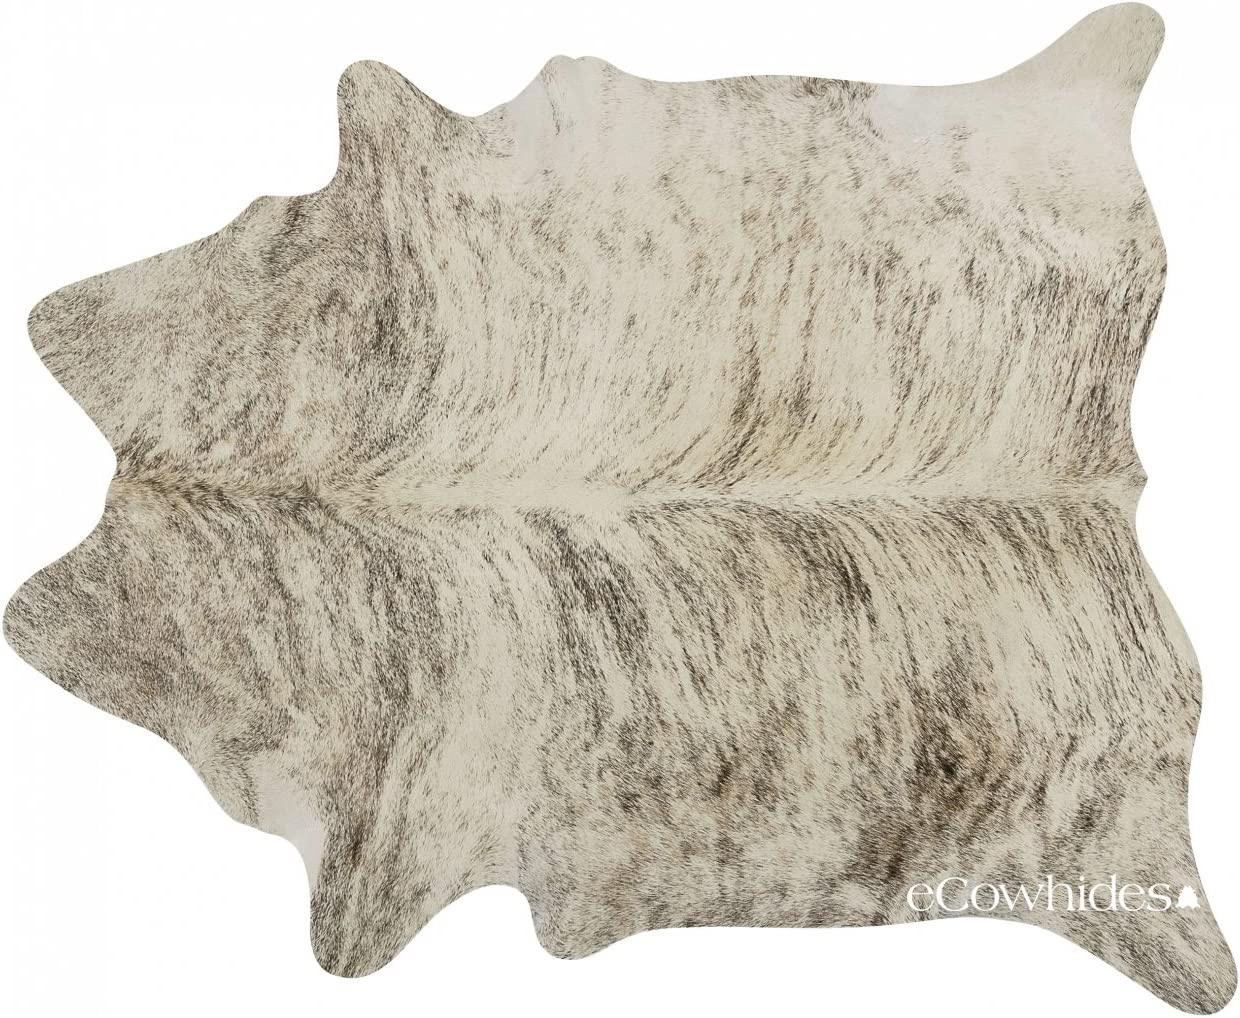 eCowhides Light Brindle Brazilian Cowhide Area Rug, Cowskin Leather Hide for Home Living Room Large 6 x 6 ft